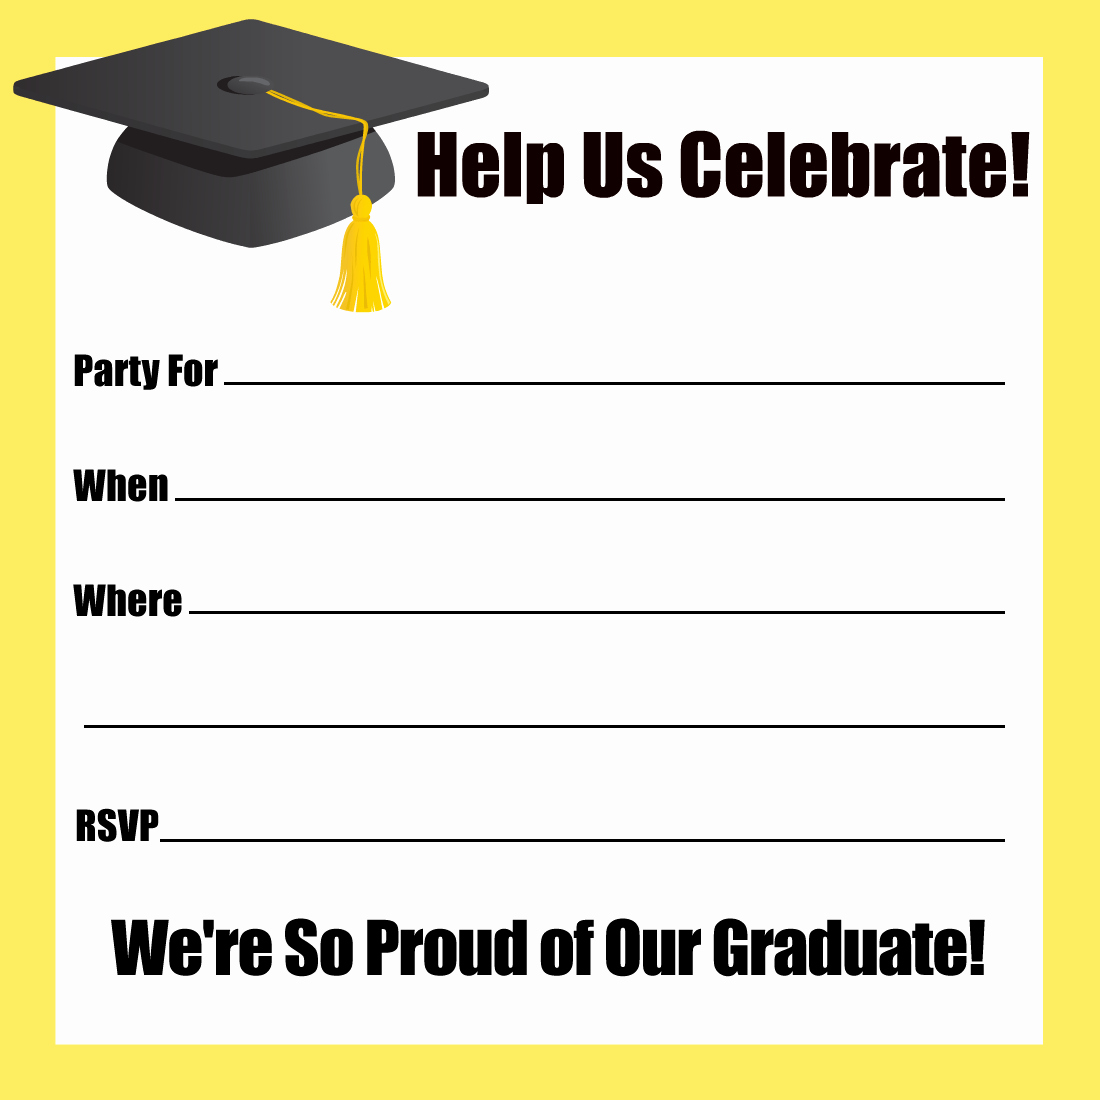 Free Graduation Party Invitations Templates Luxury Free Printable Graduation Party Invitations Templates